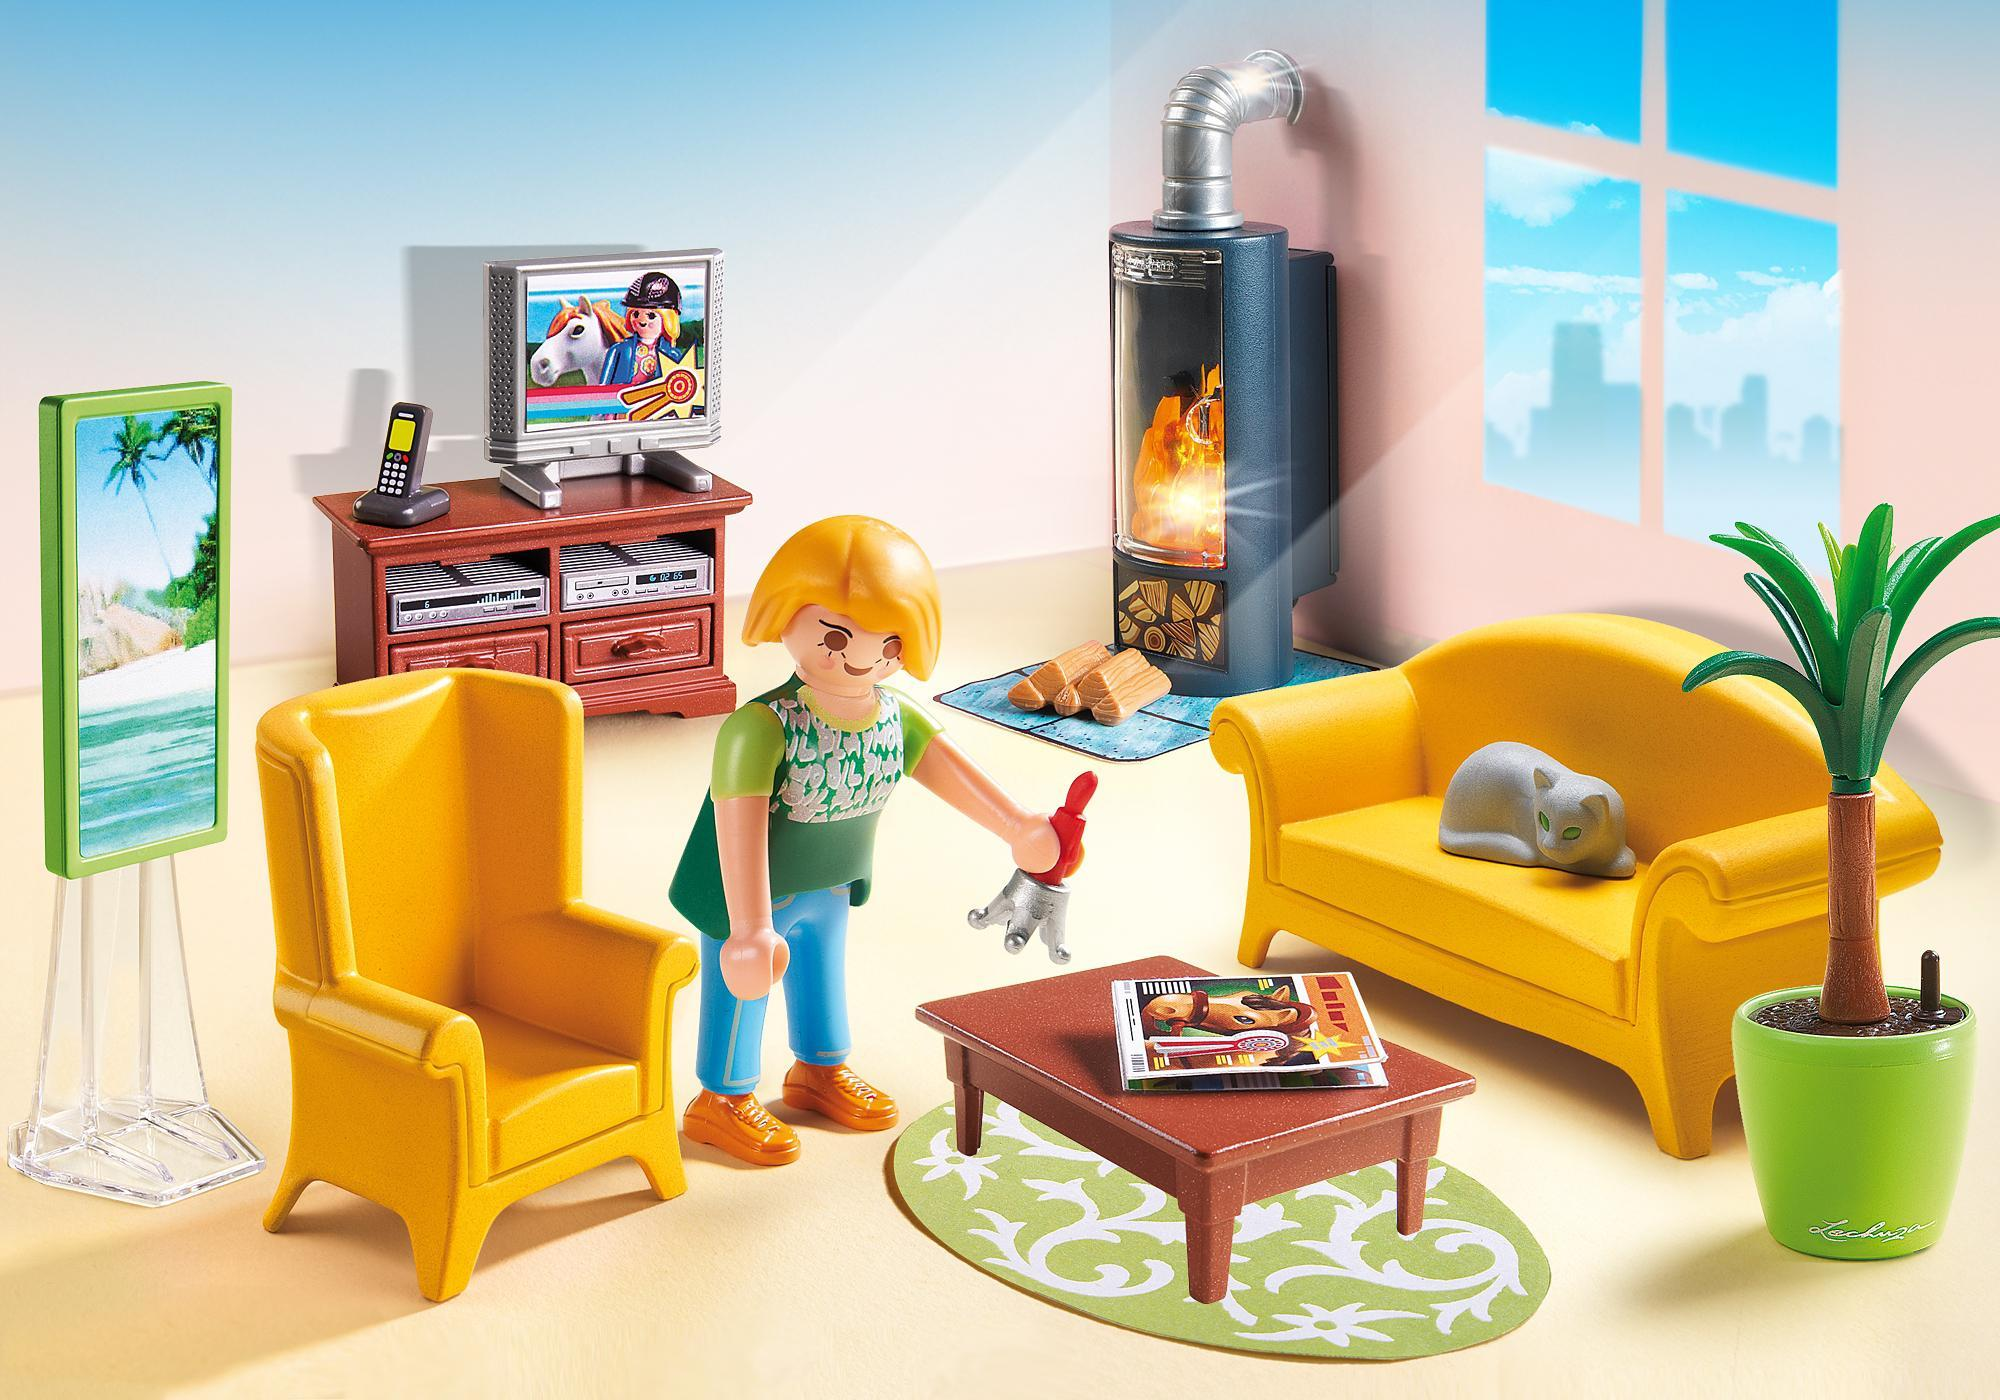 http://media.playmobil.com/i/playmobil/5308_product_detail/Salon avec poêle à bois